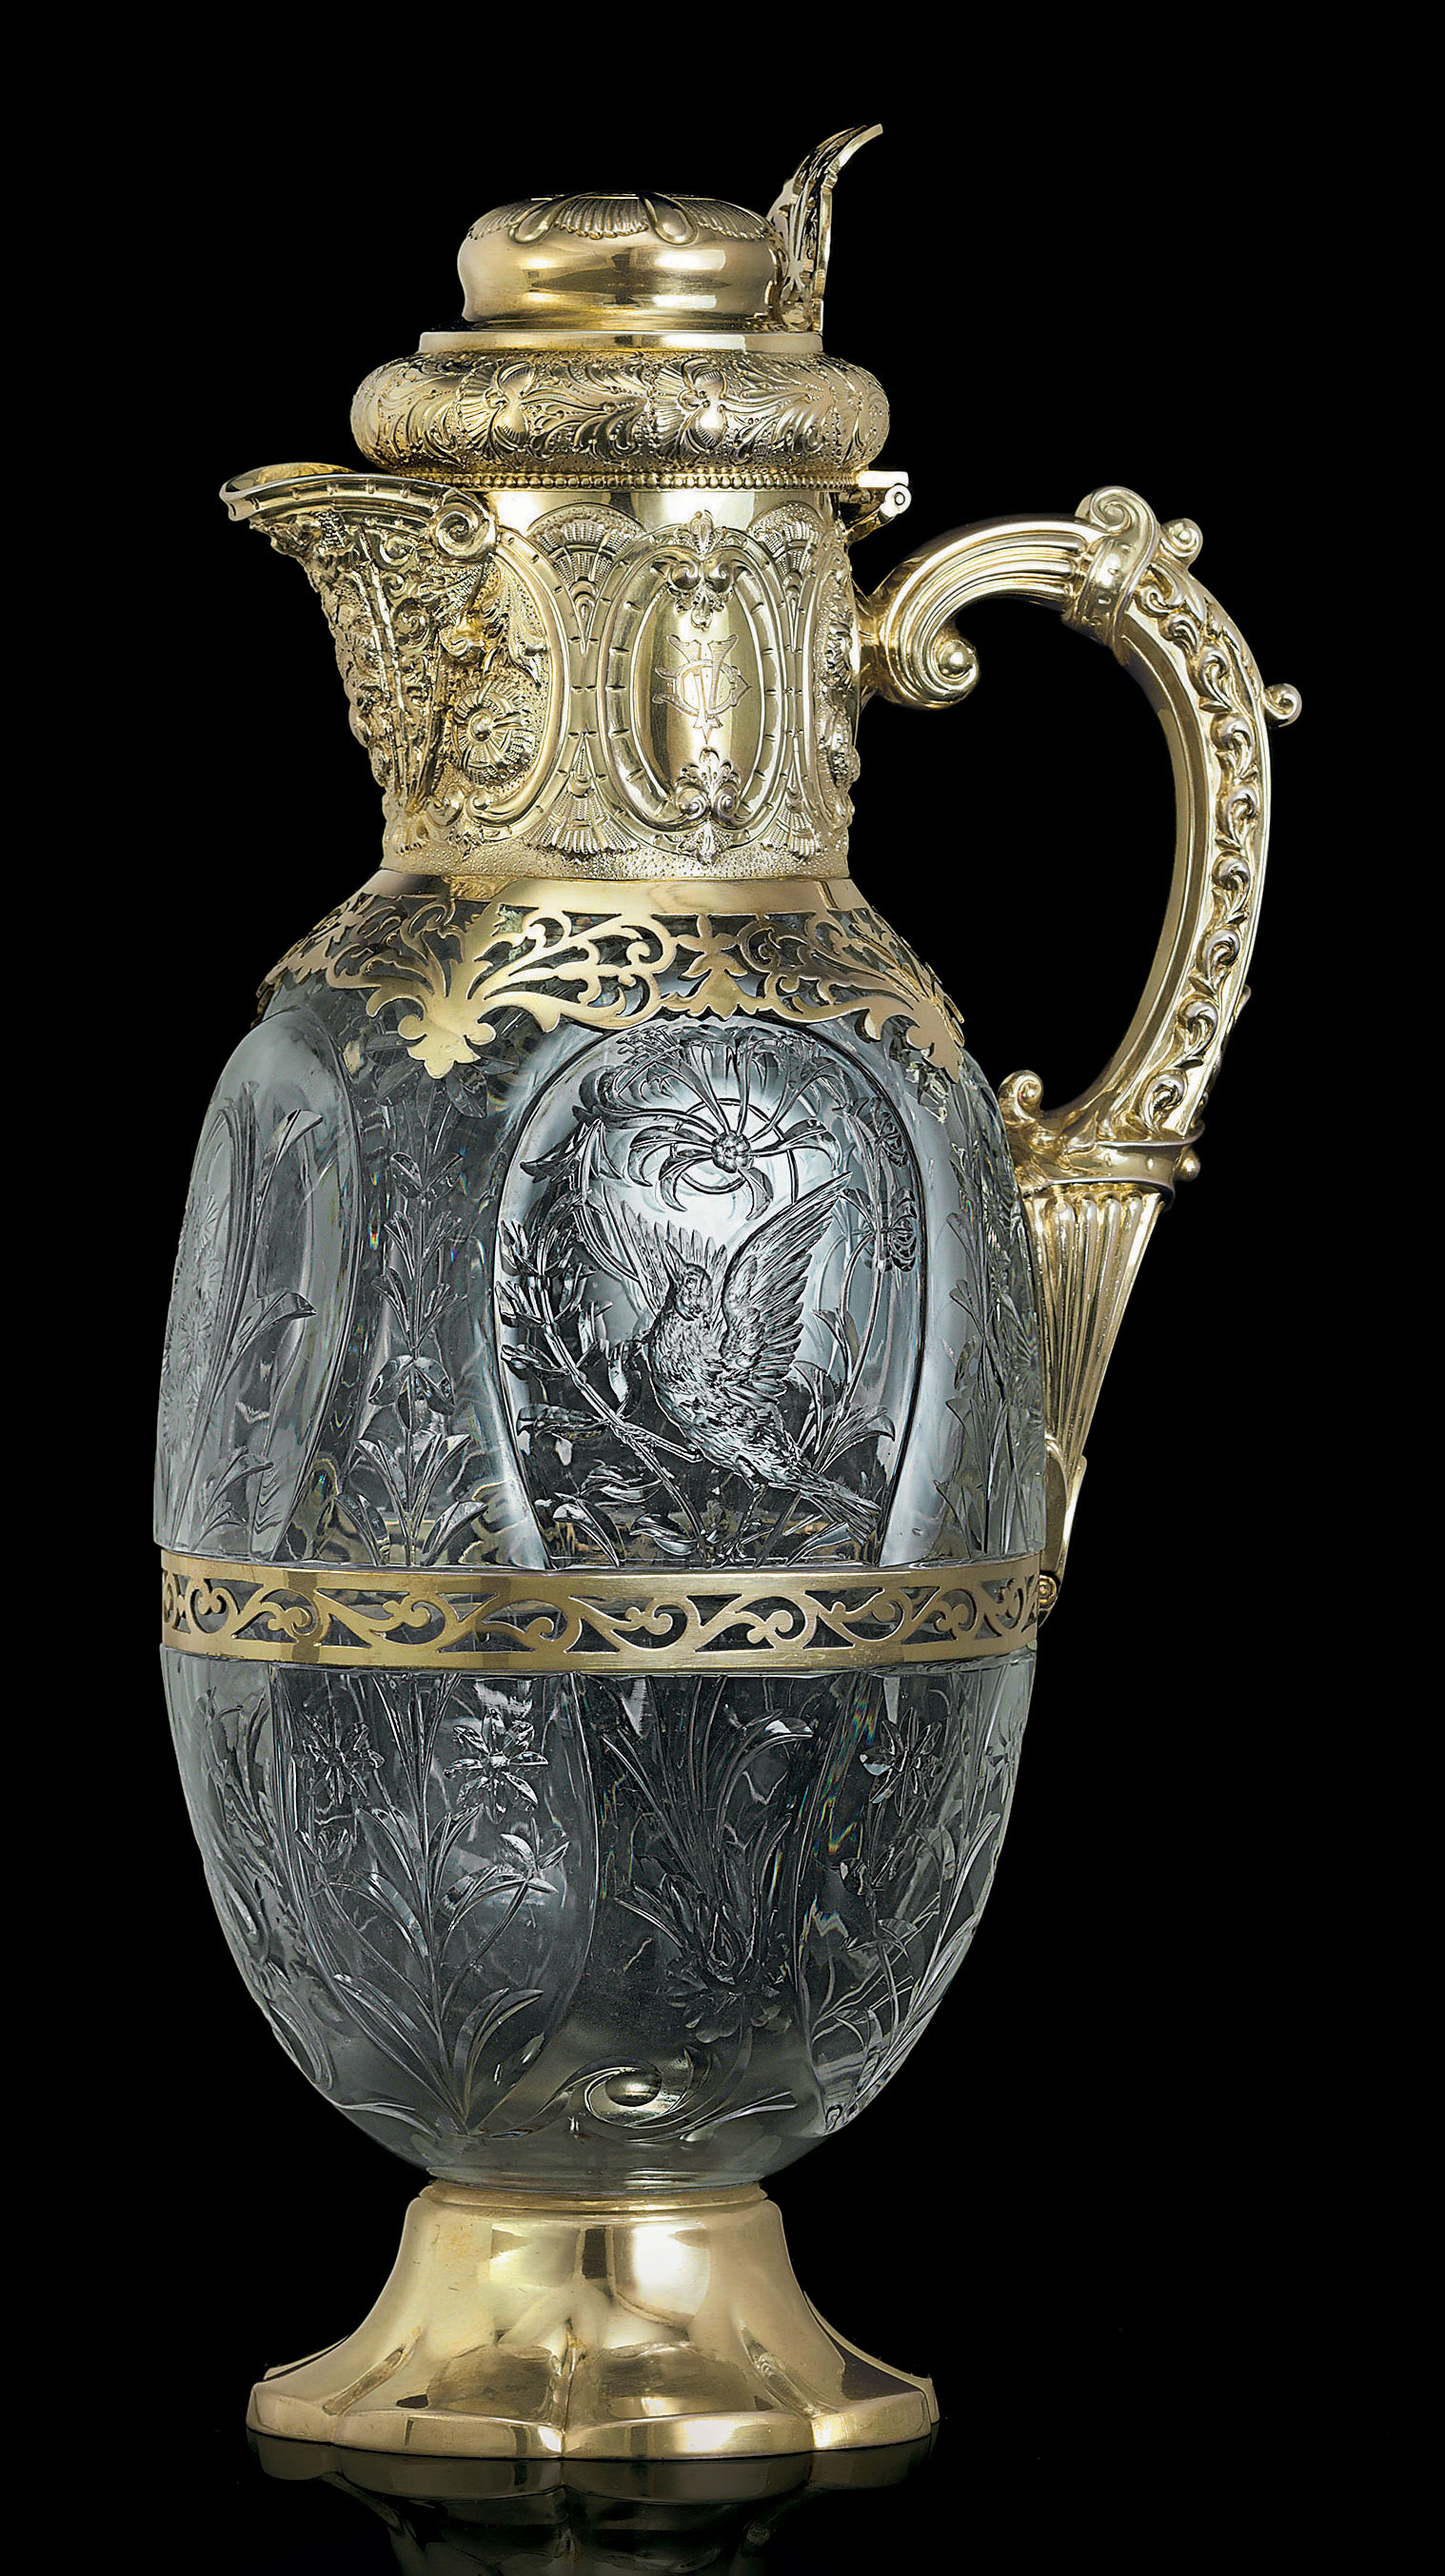 A VICTORIAN SILVER-GILT AND GLASS CLARET JUG